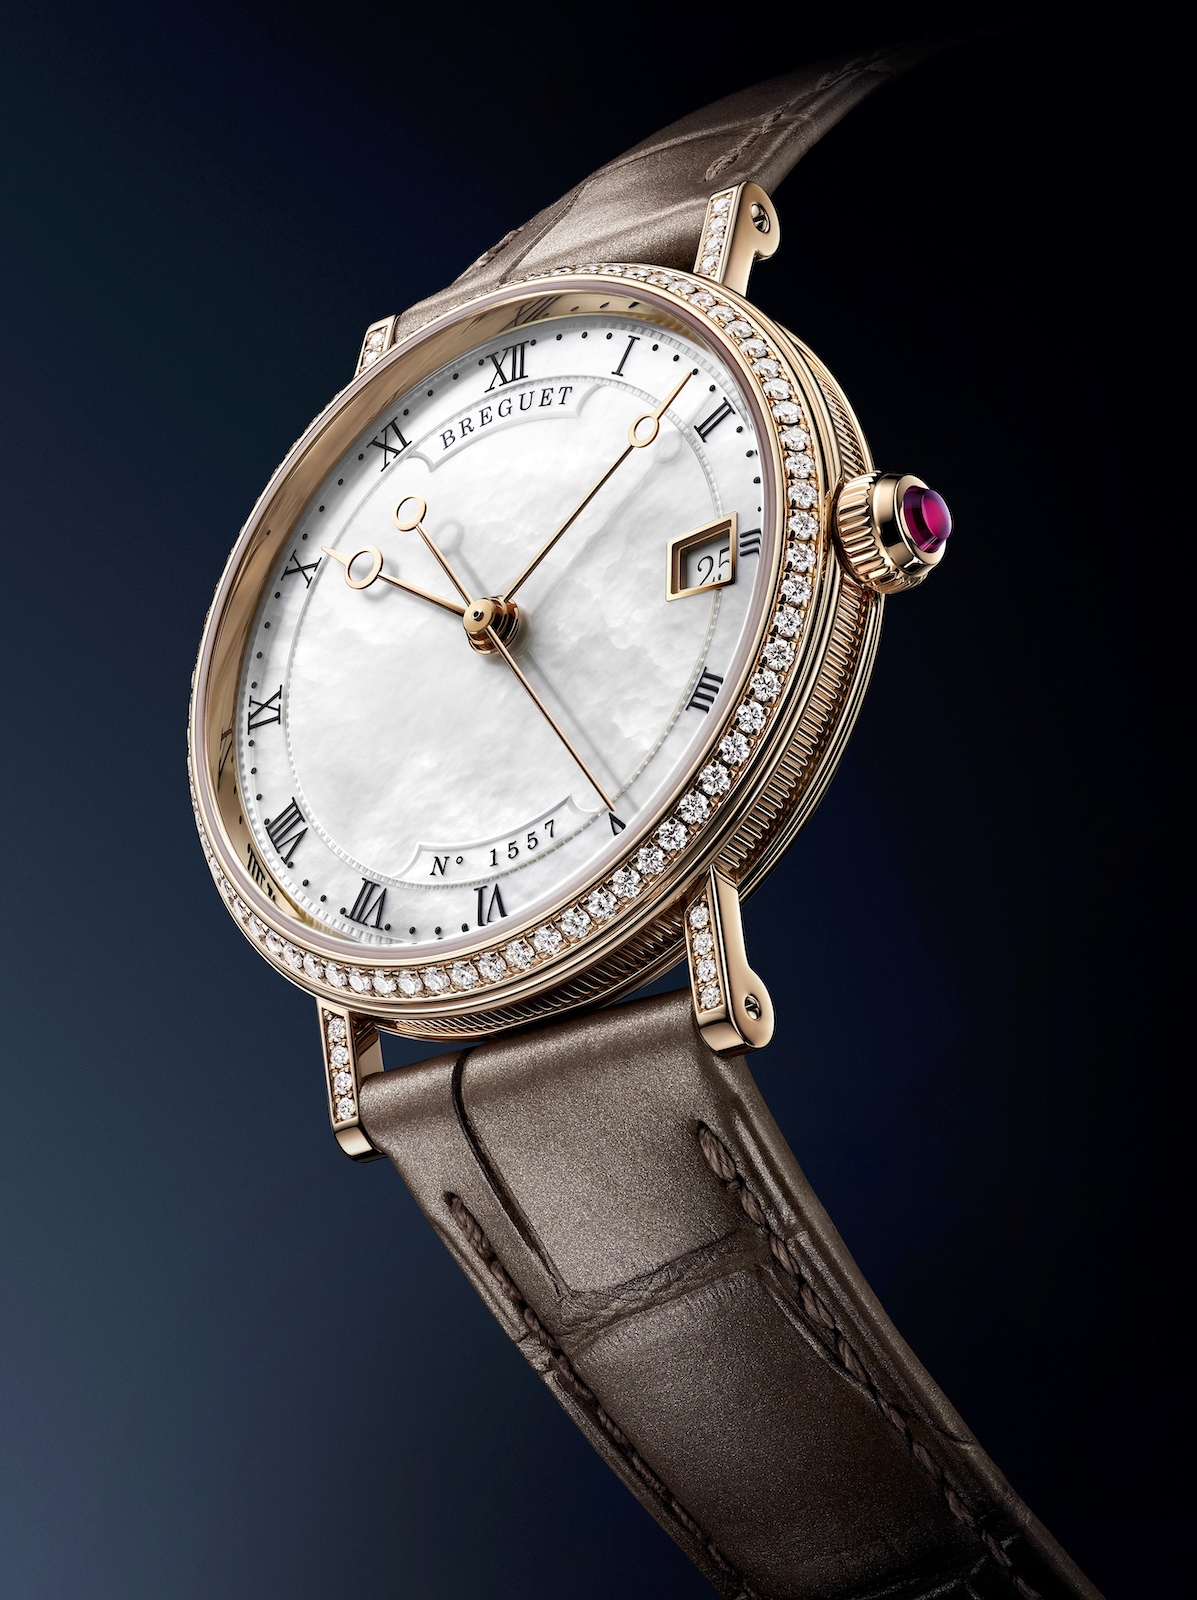 Breguet en el Time to Move 2019 - Classique Dame 9068 RG